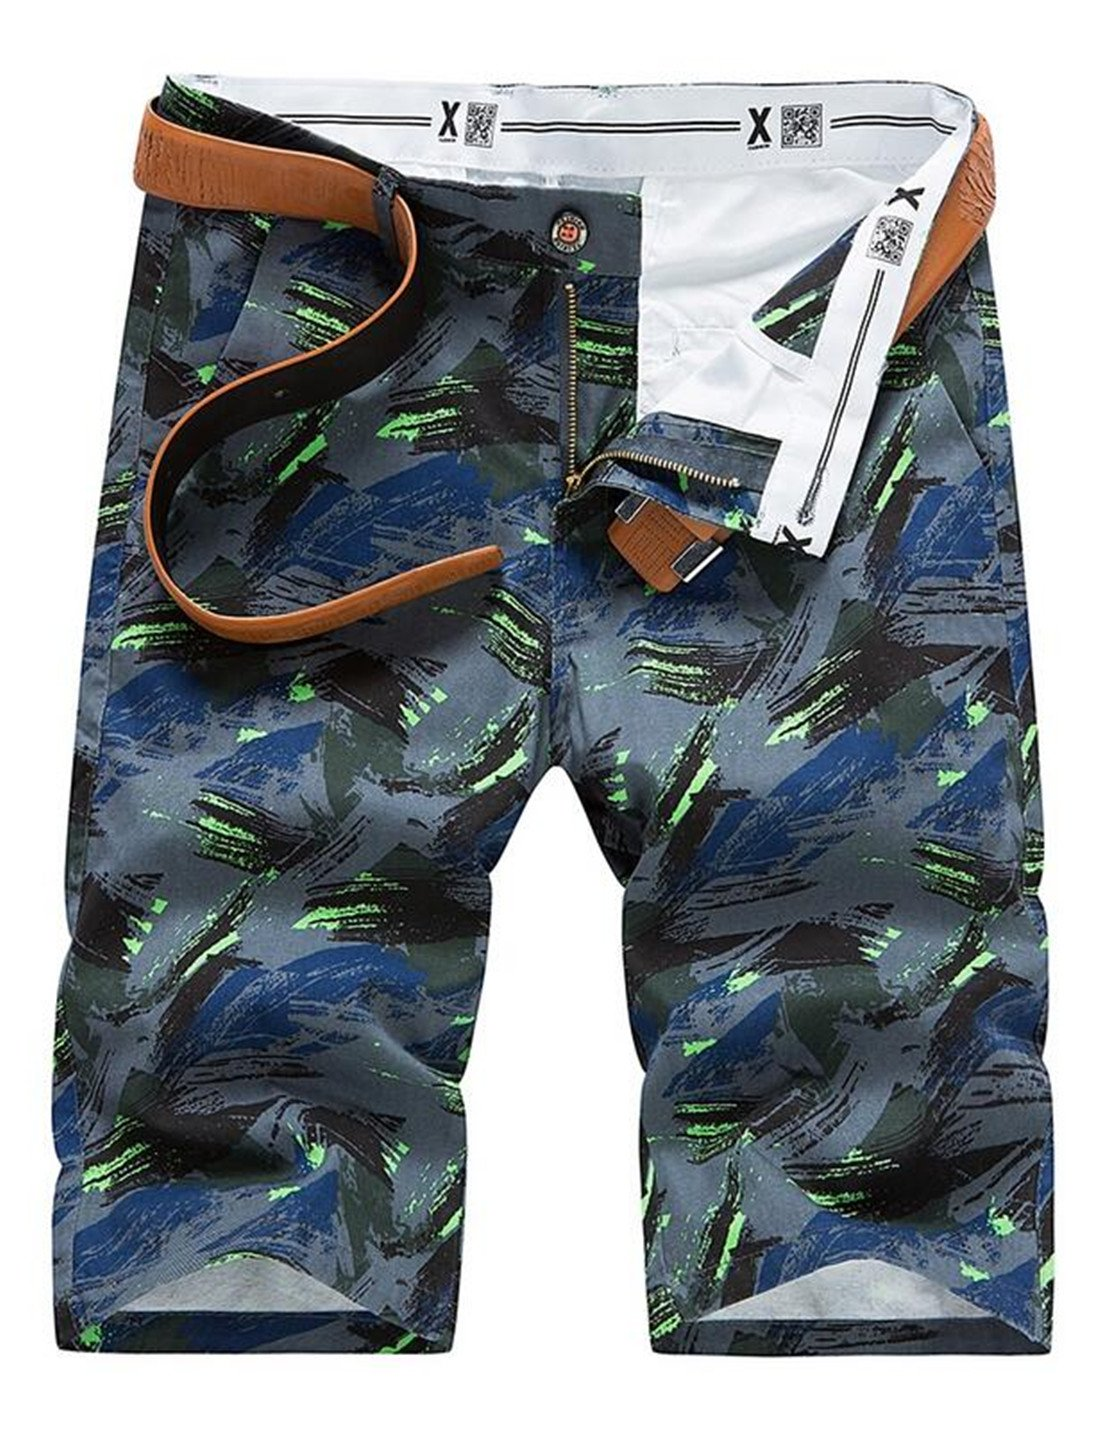 BLTR Men Cotton Camouflage Slim Fit Flat Front Beach Shorts Grey 29